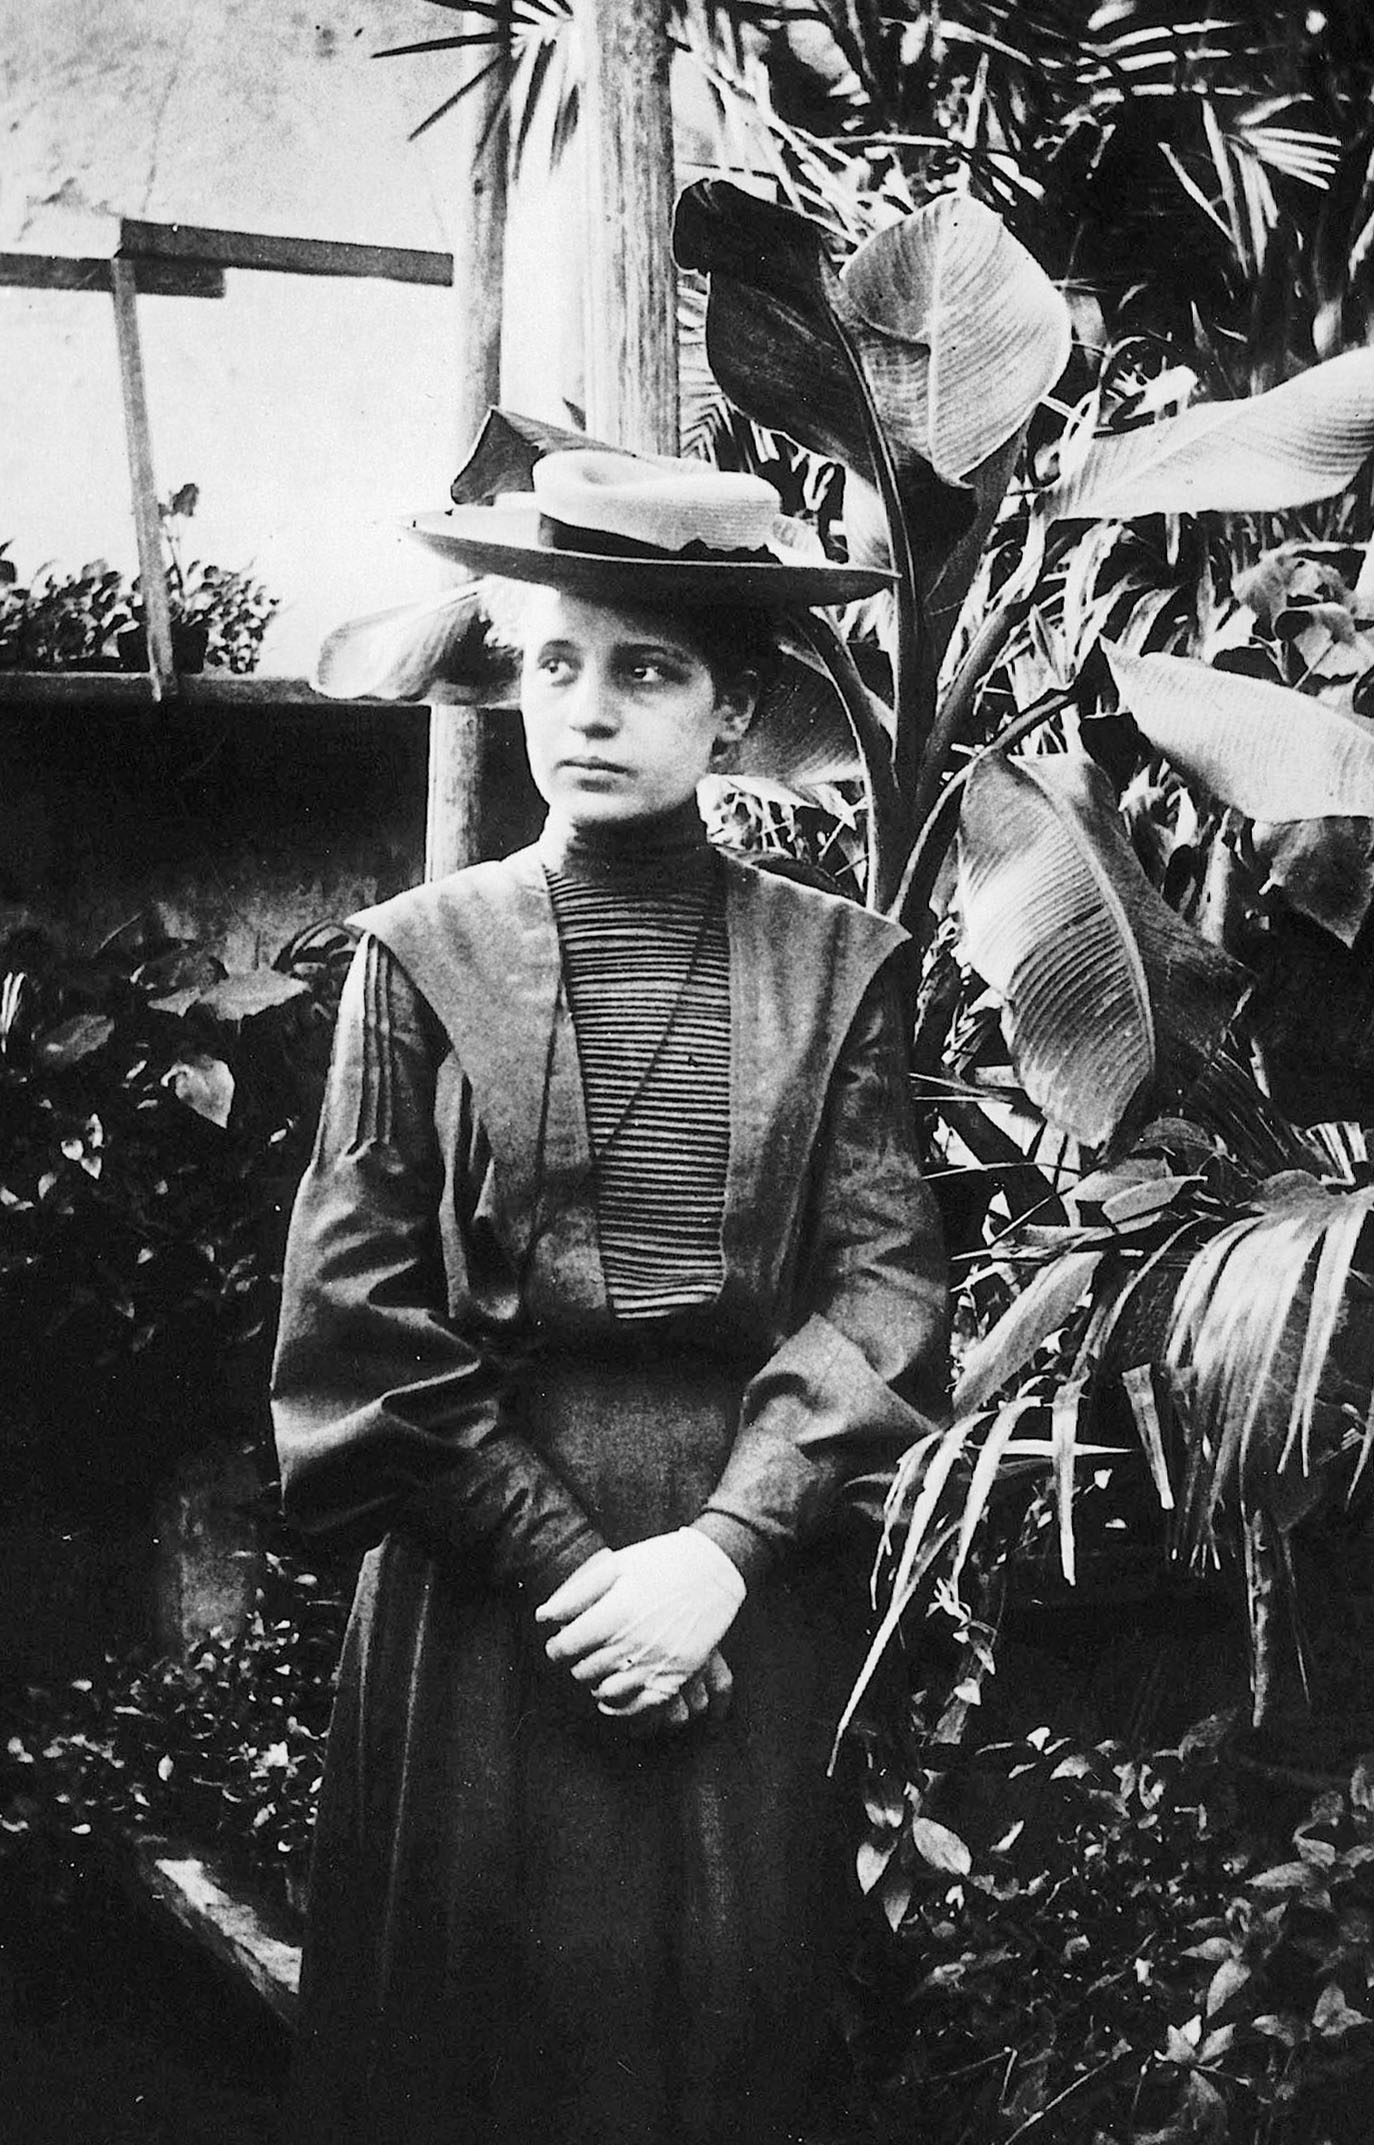 Lise Meitner Lise Meitner Wikipedia the free encyclopedia